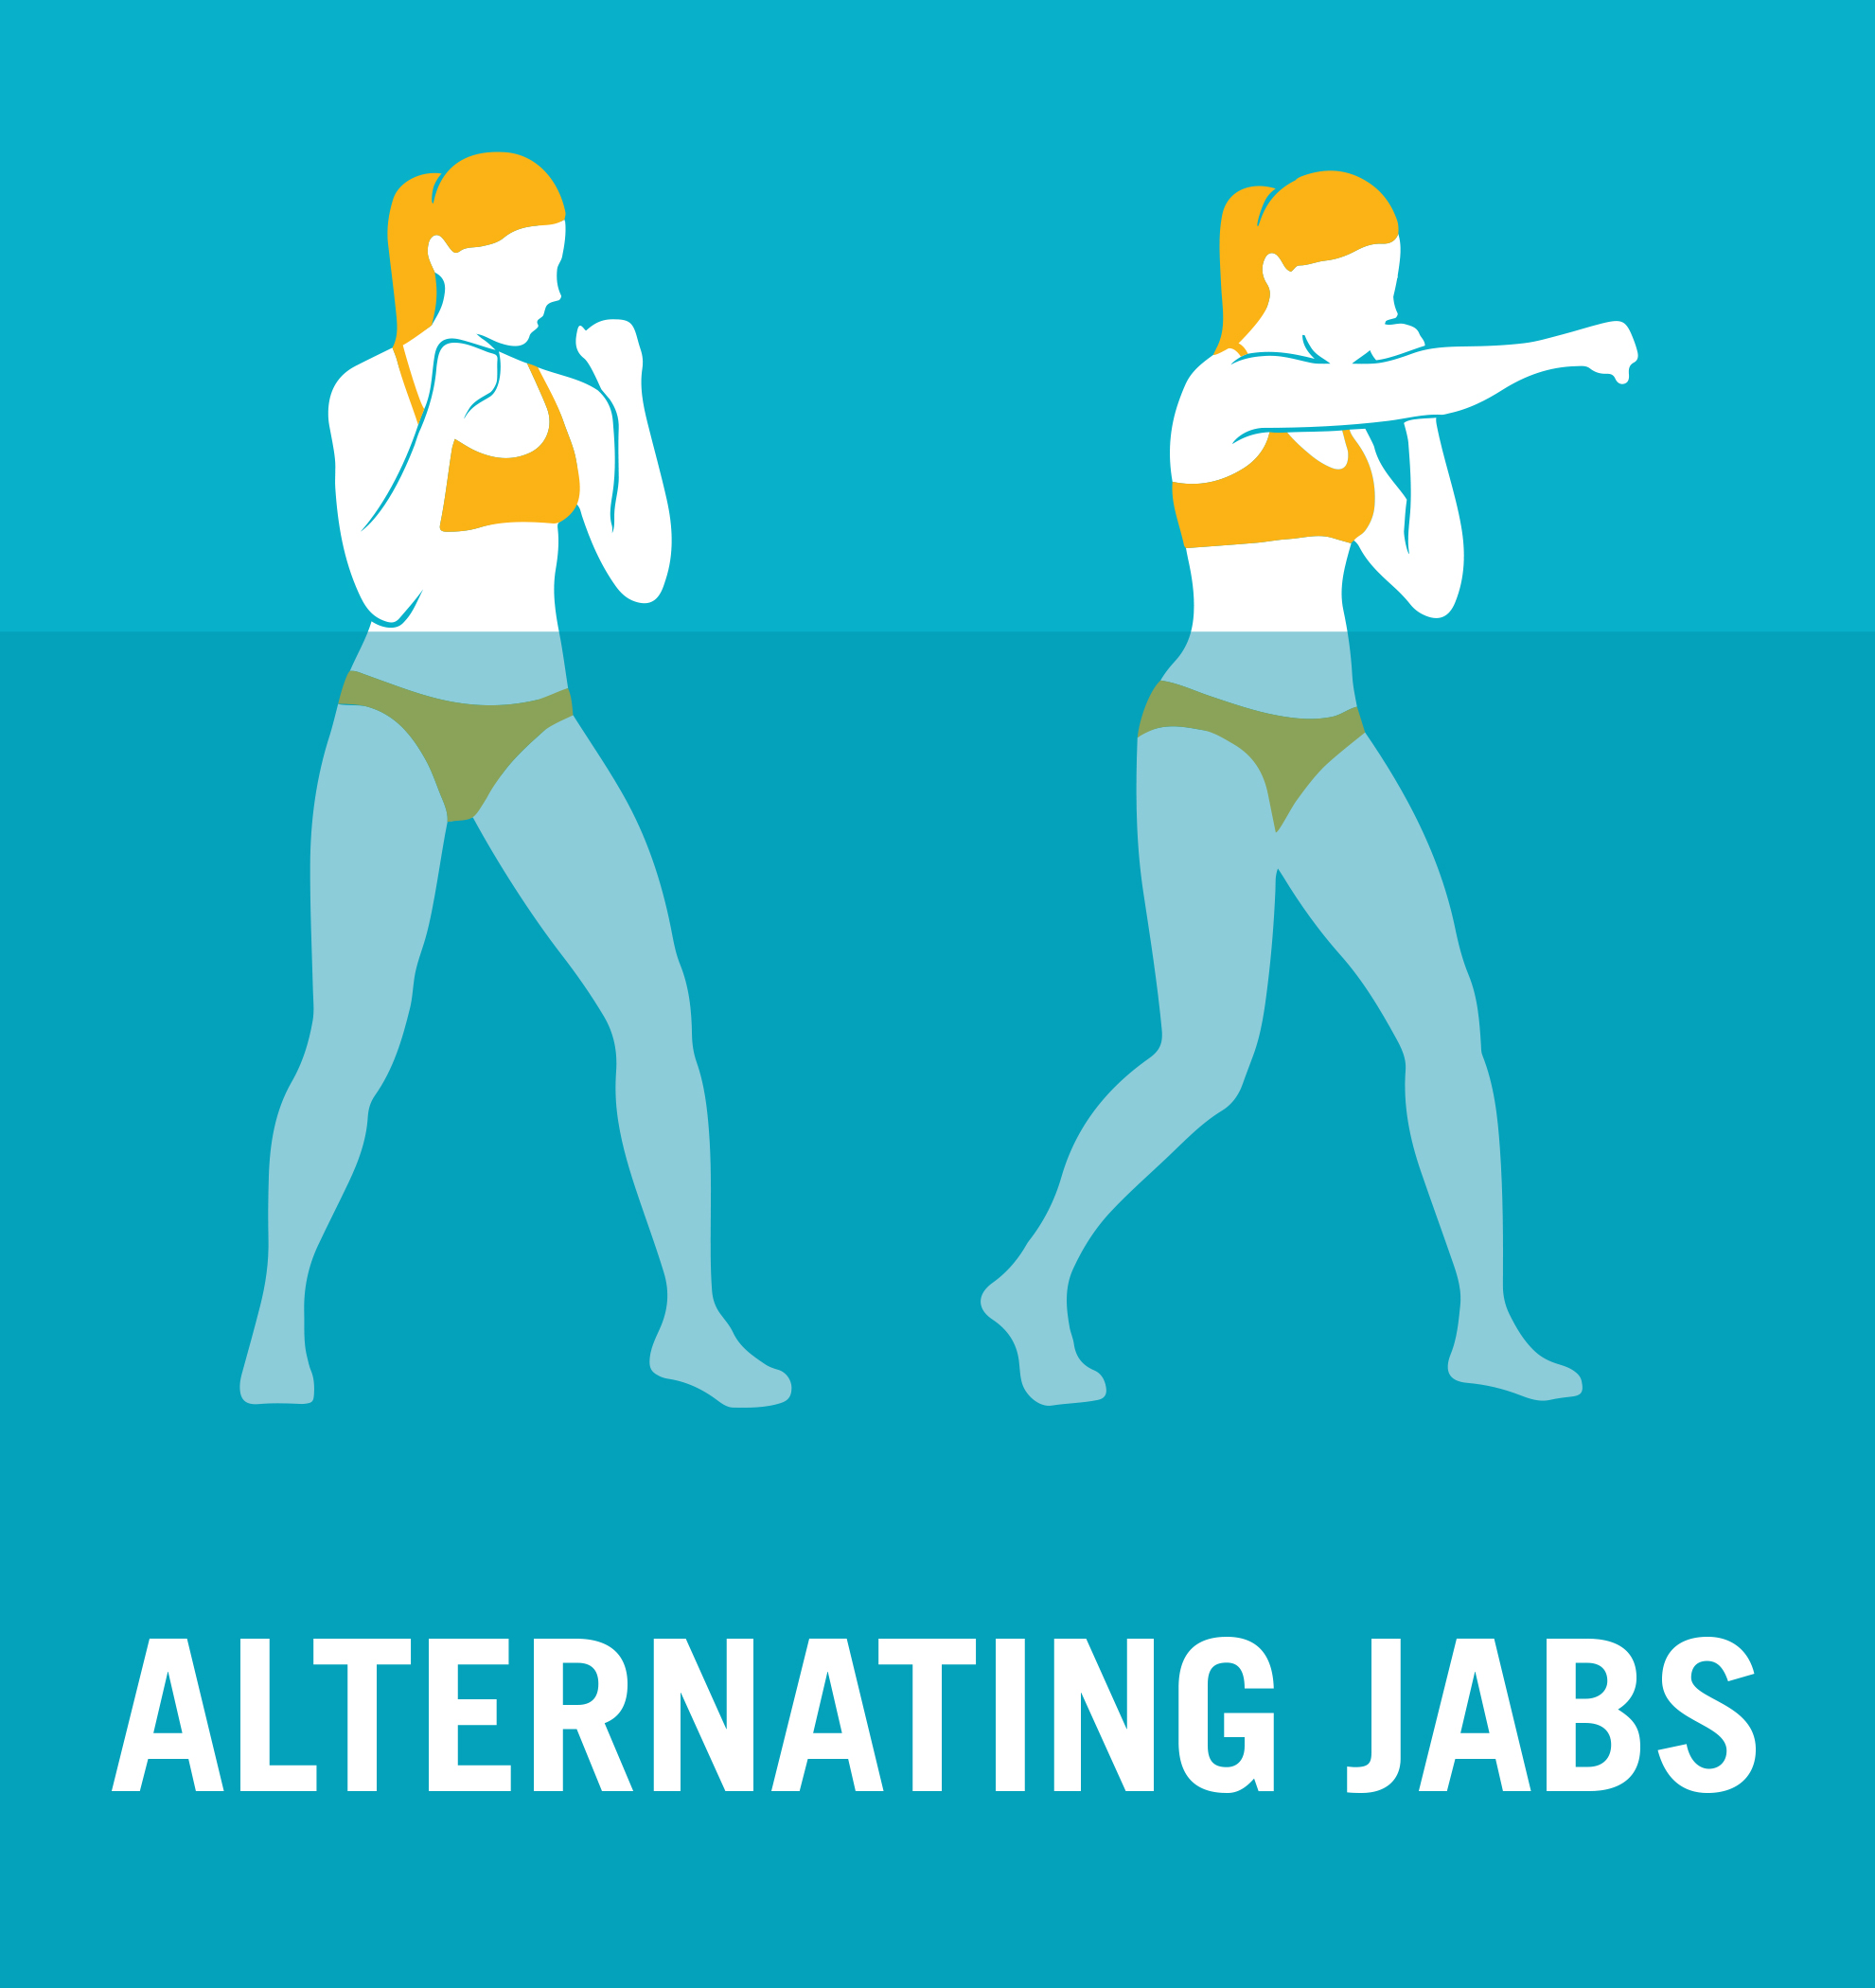 Alternating Jabs